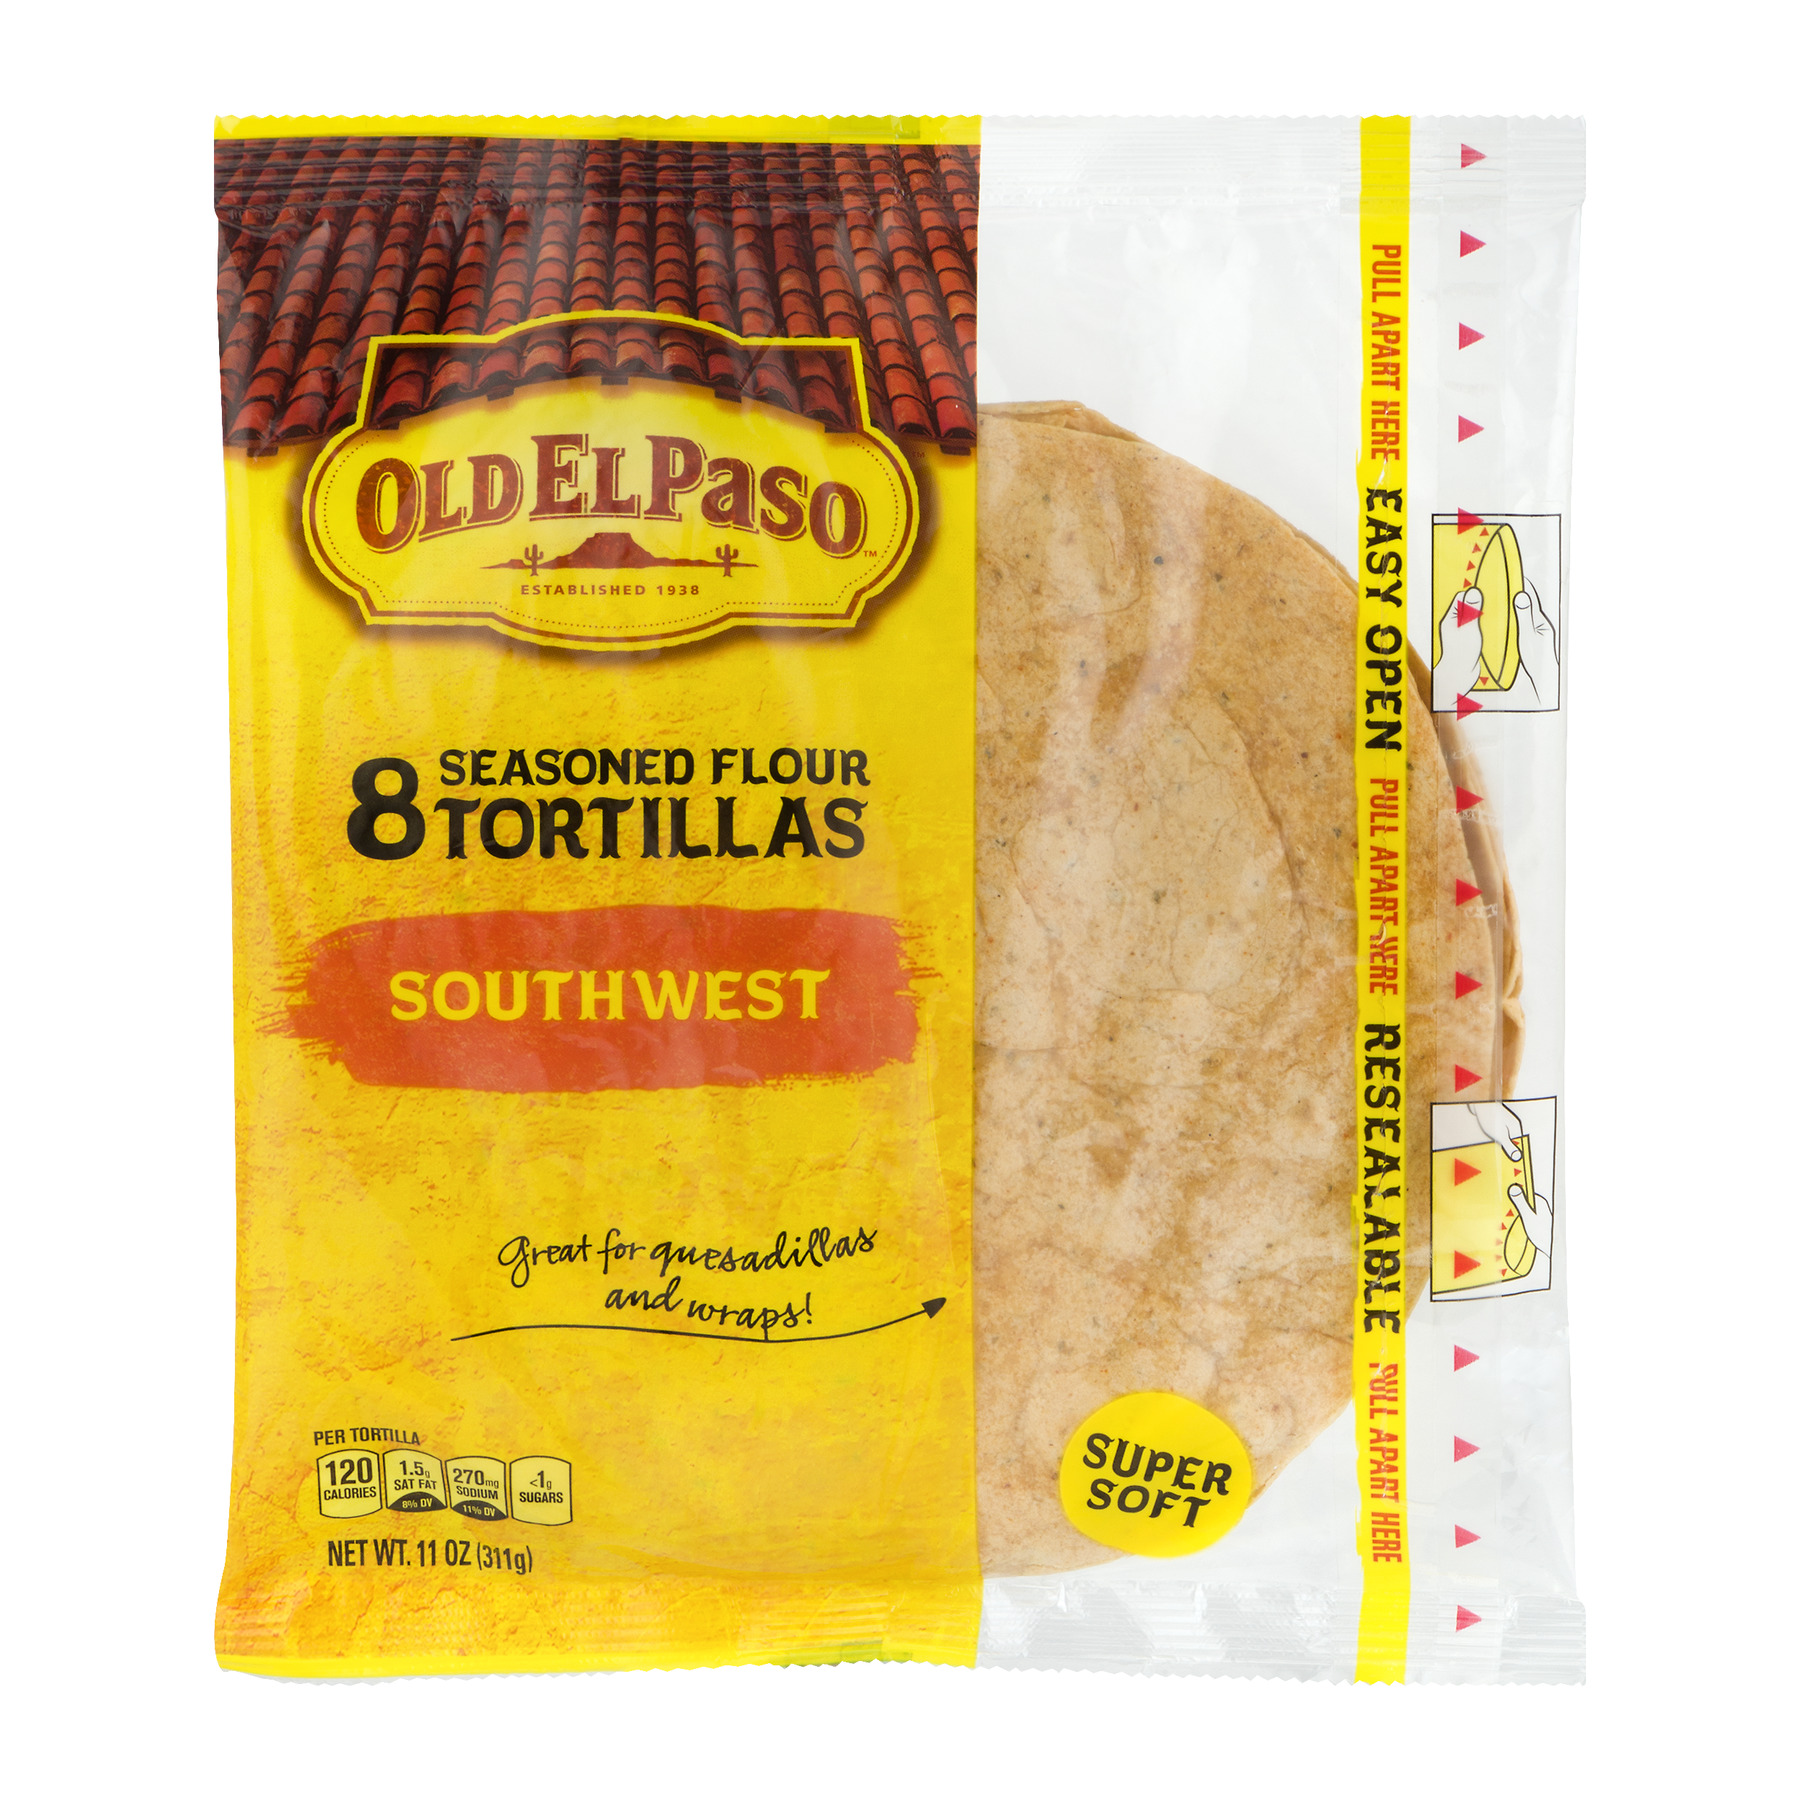 Old El Paso™ Southwest Seasoned Flour Tortillas 8 ct Bag, 11.0 OZ